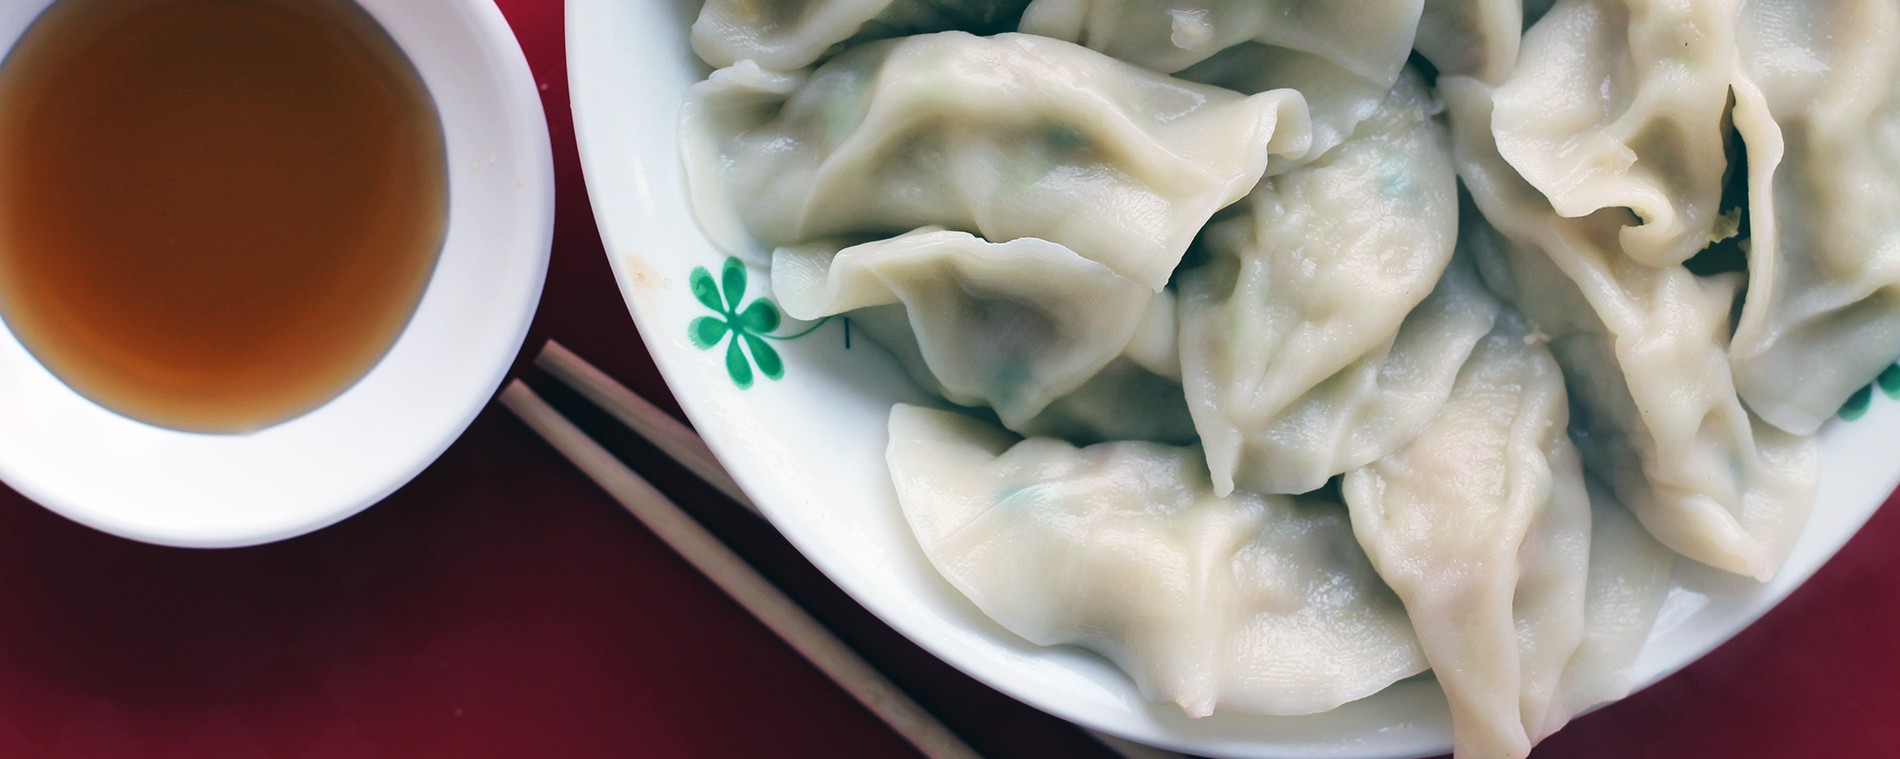 A Visual Guide to Shanghai's Greatest Dumpling Hits